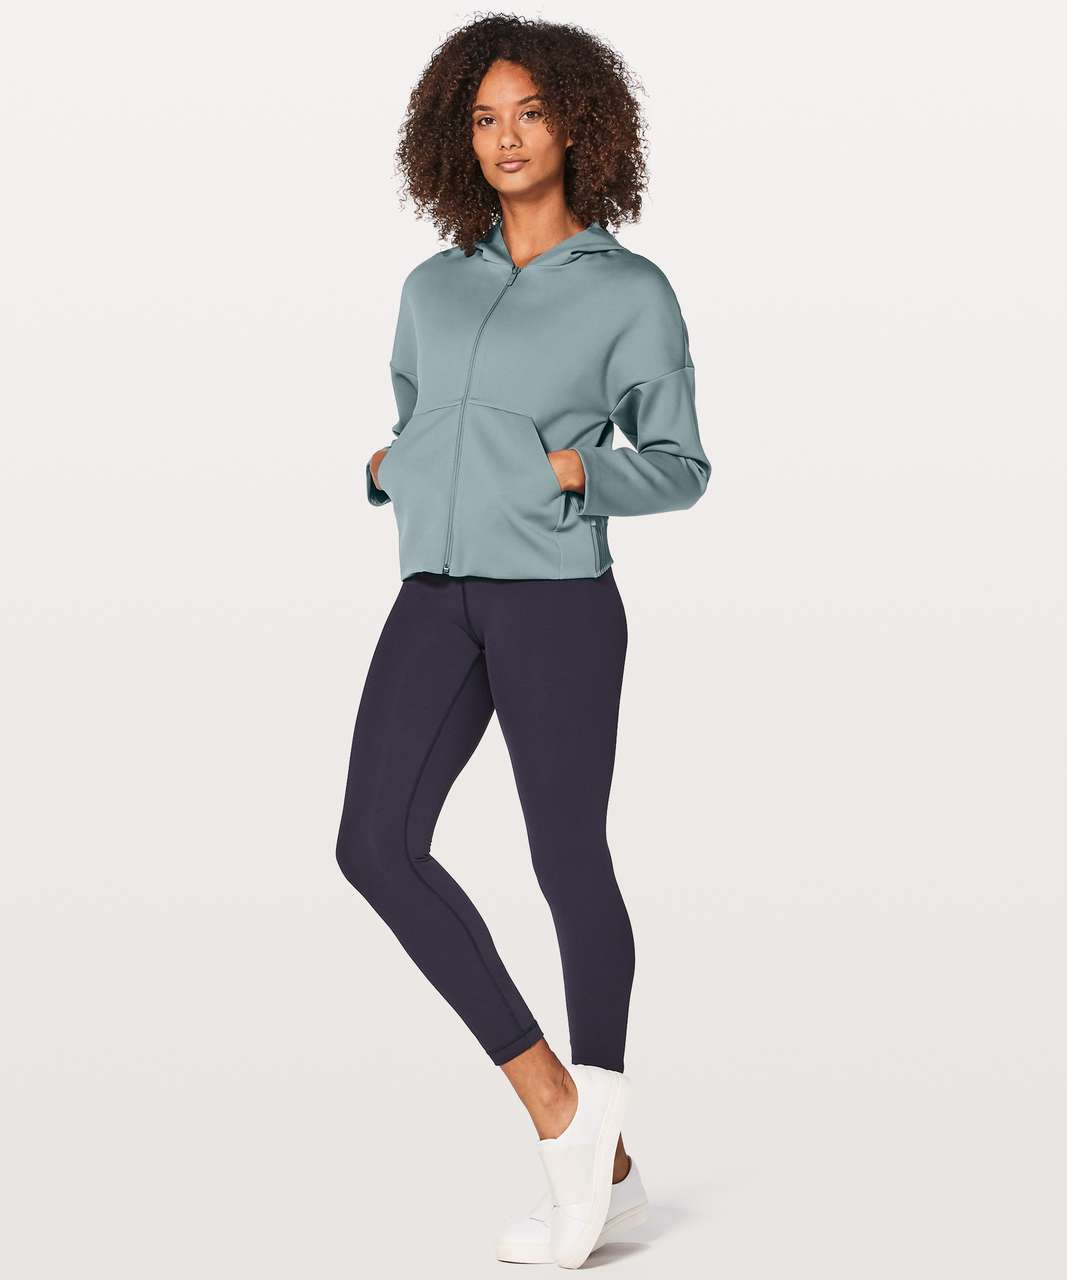 Lululemon Shaped Jacket Expression - Sterling